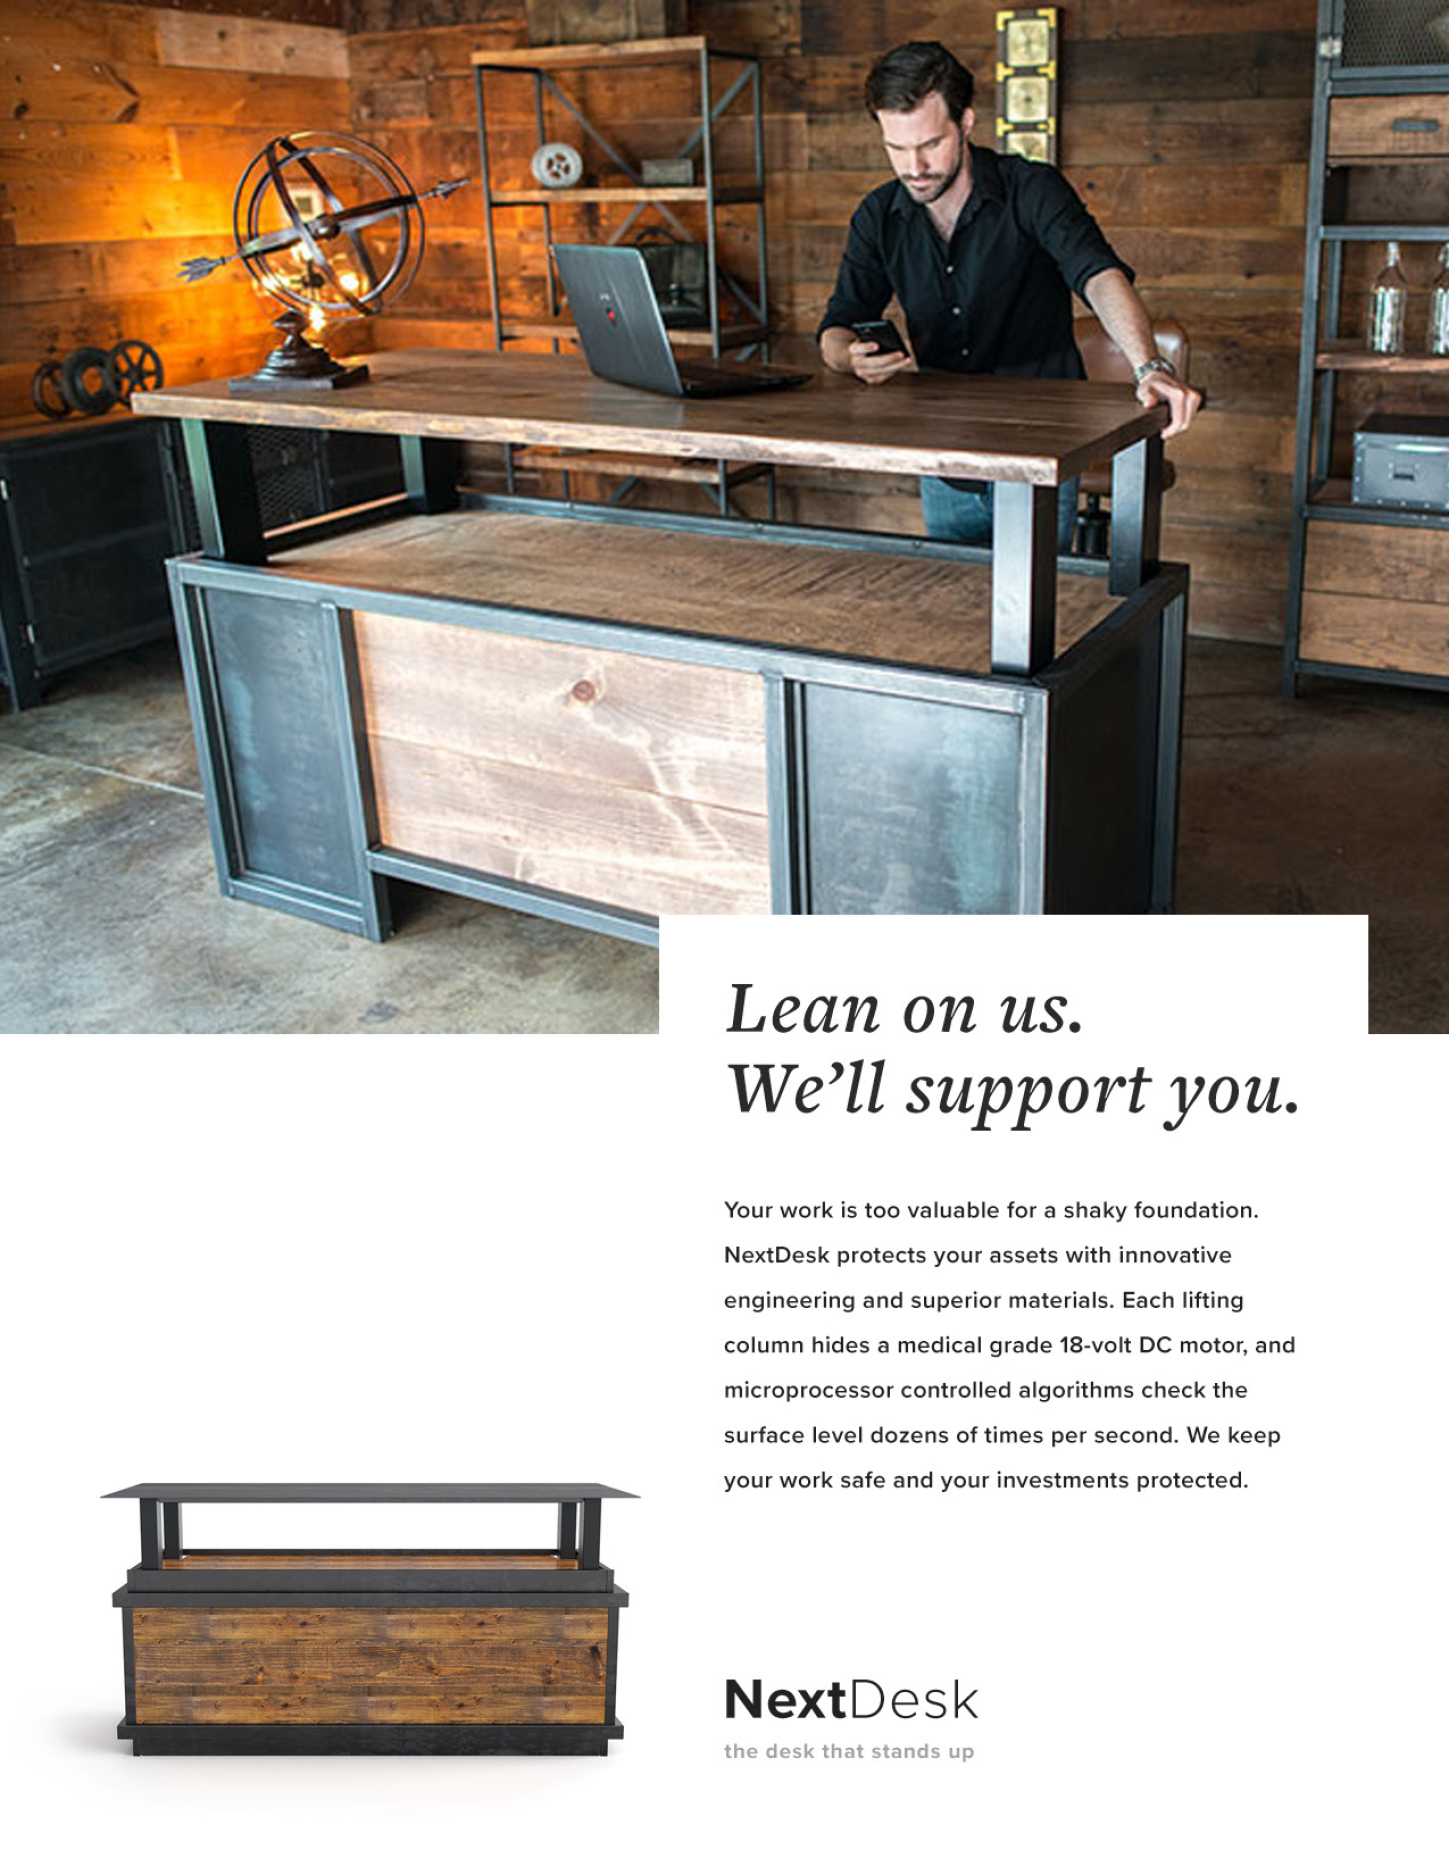 Lean on us. We'll support you. - Your work is too valuable for a shaky foundation. NextDesk protects your assets with innovative engineering and superior materials. Each lifting column hides a medical grade 18-volt DC motor, and microprocessor controlled algorithms check the surface level dozens of times per second. We keep your work safe and your investments protected.